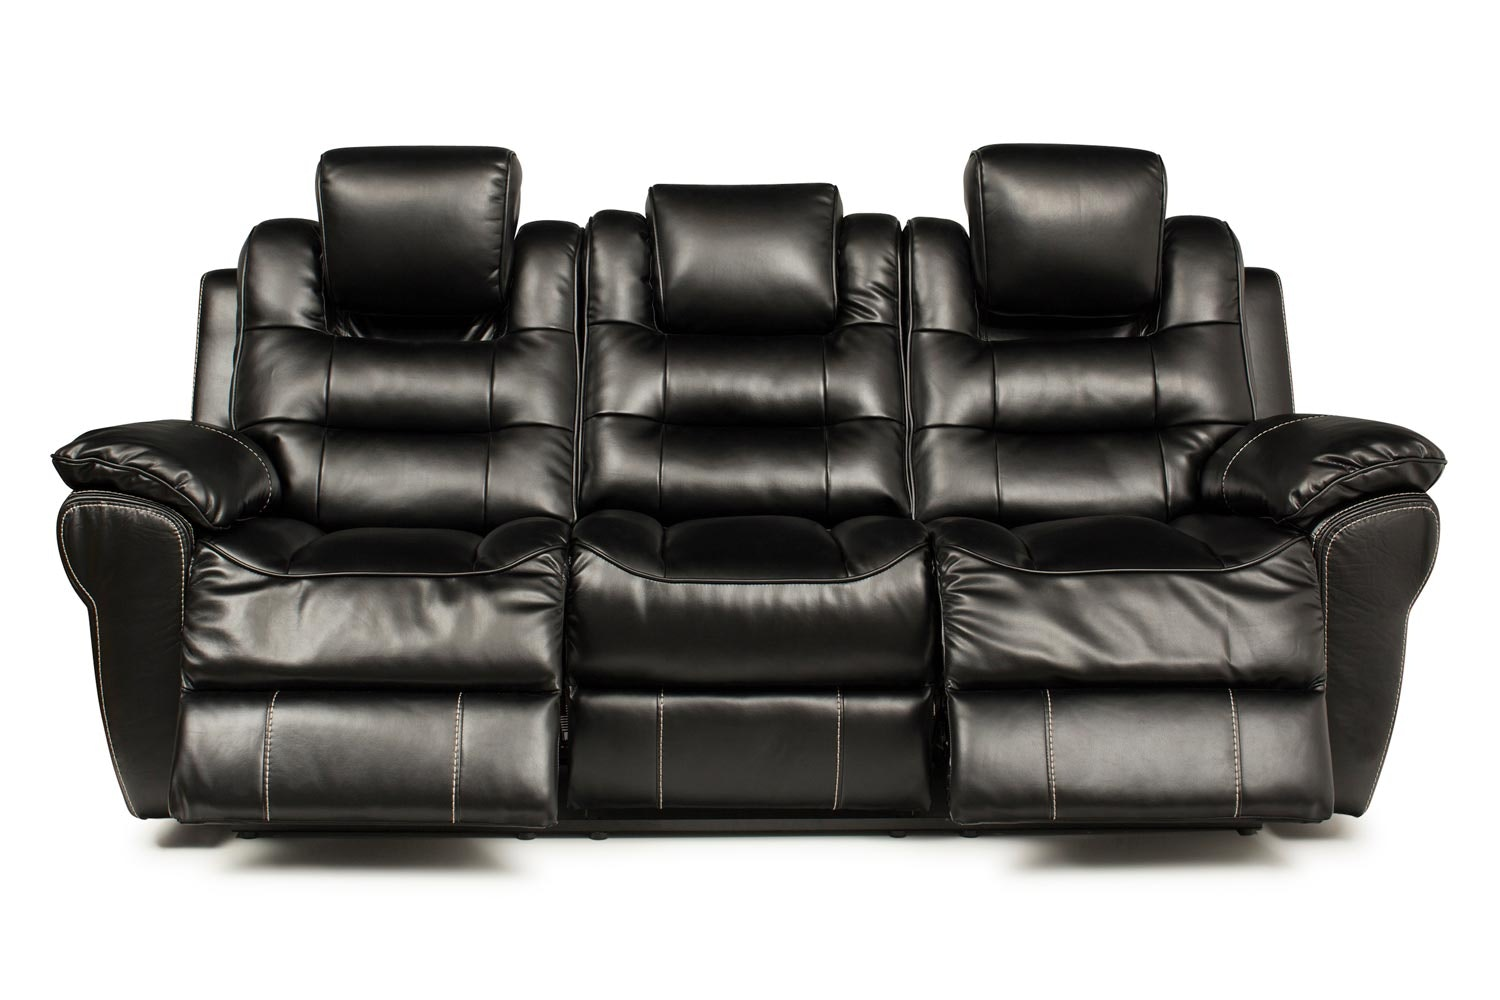 Baxter 3 Seater Twin Electric Recliner | Black